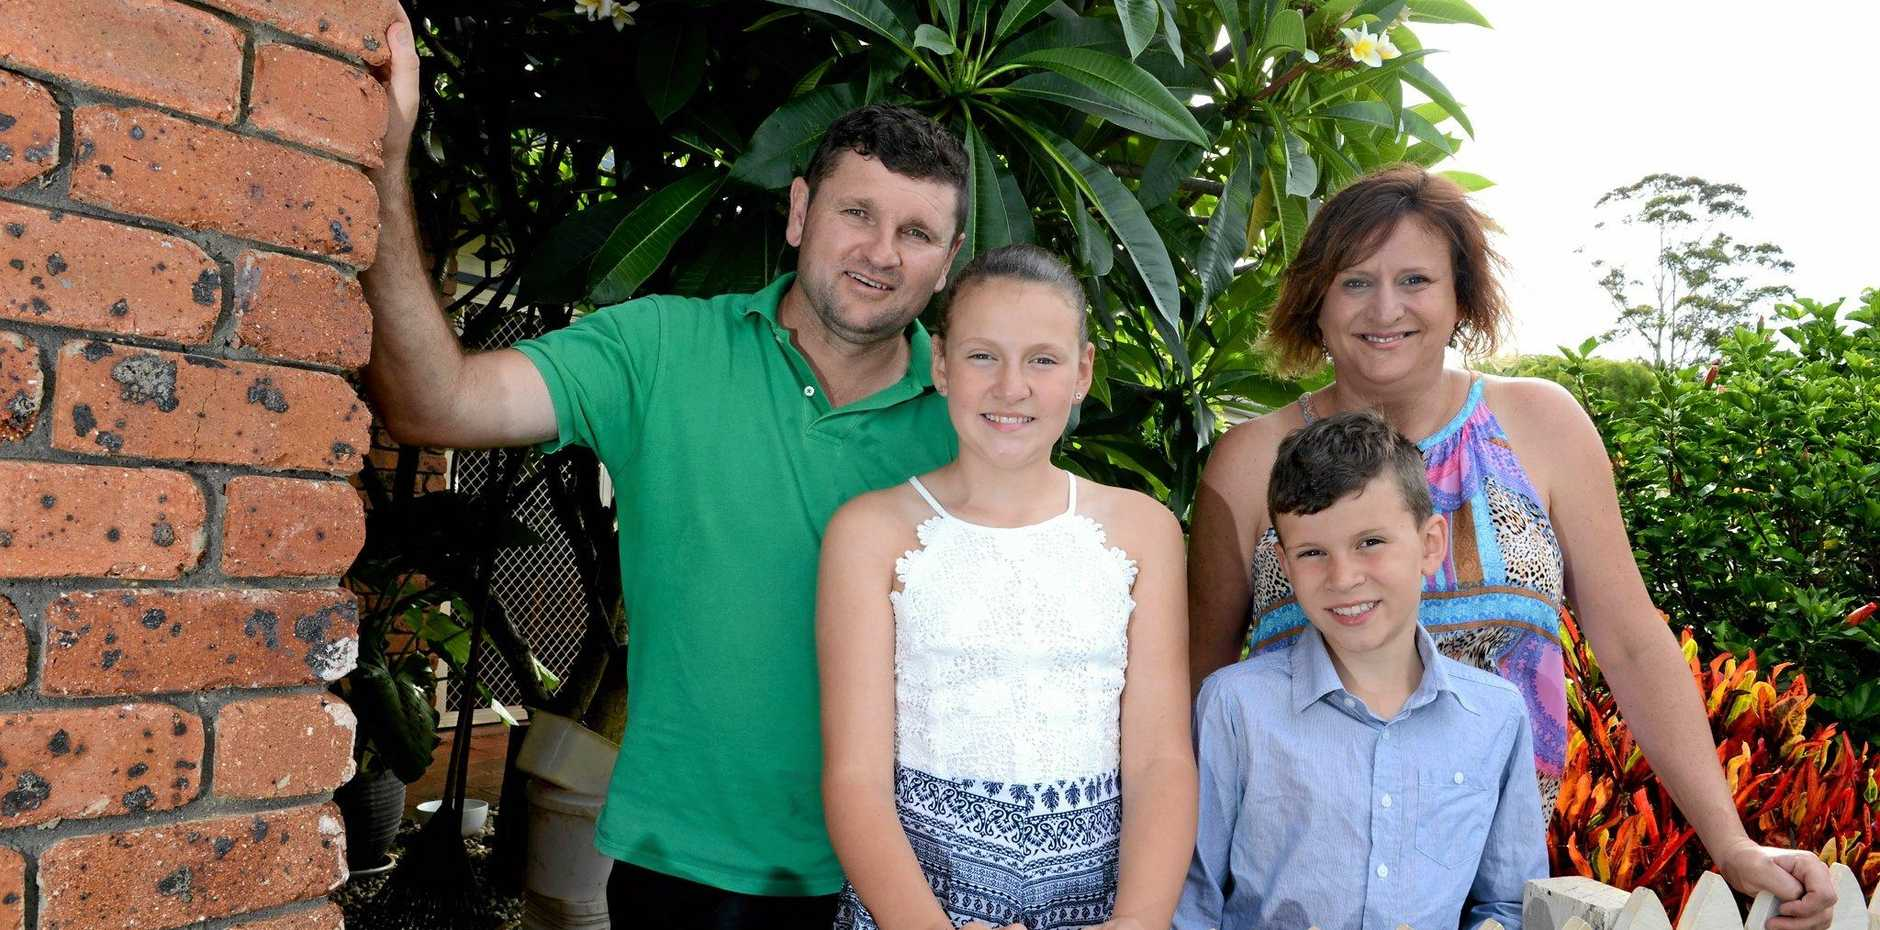 Mia Johnson, 11 of Goonellabah, with her family, Brad, Christie, and Kahn, 9. Mia is in  remission from a rare cancer. She and her family are supported by the Children's Hospital Foundation.Photo Cathy Adams / The Northern Star